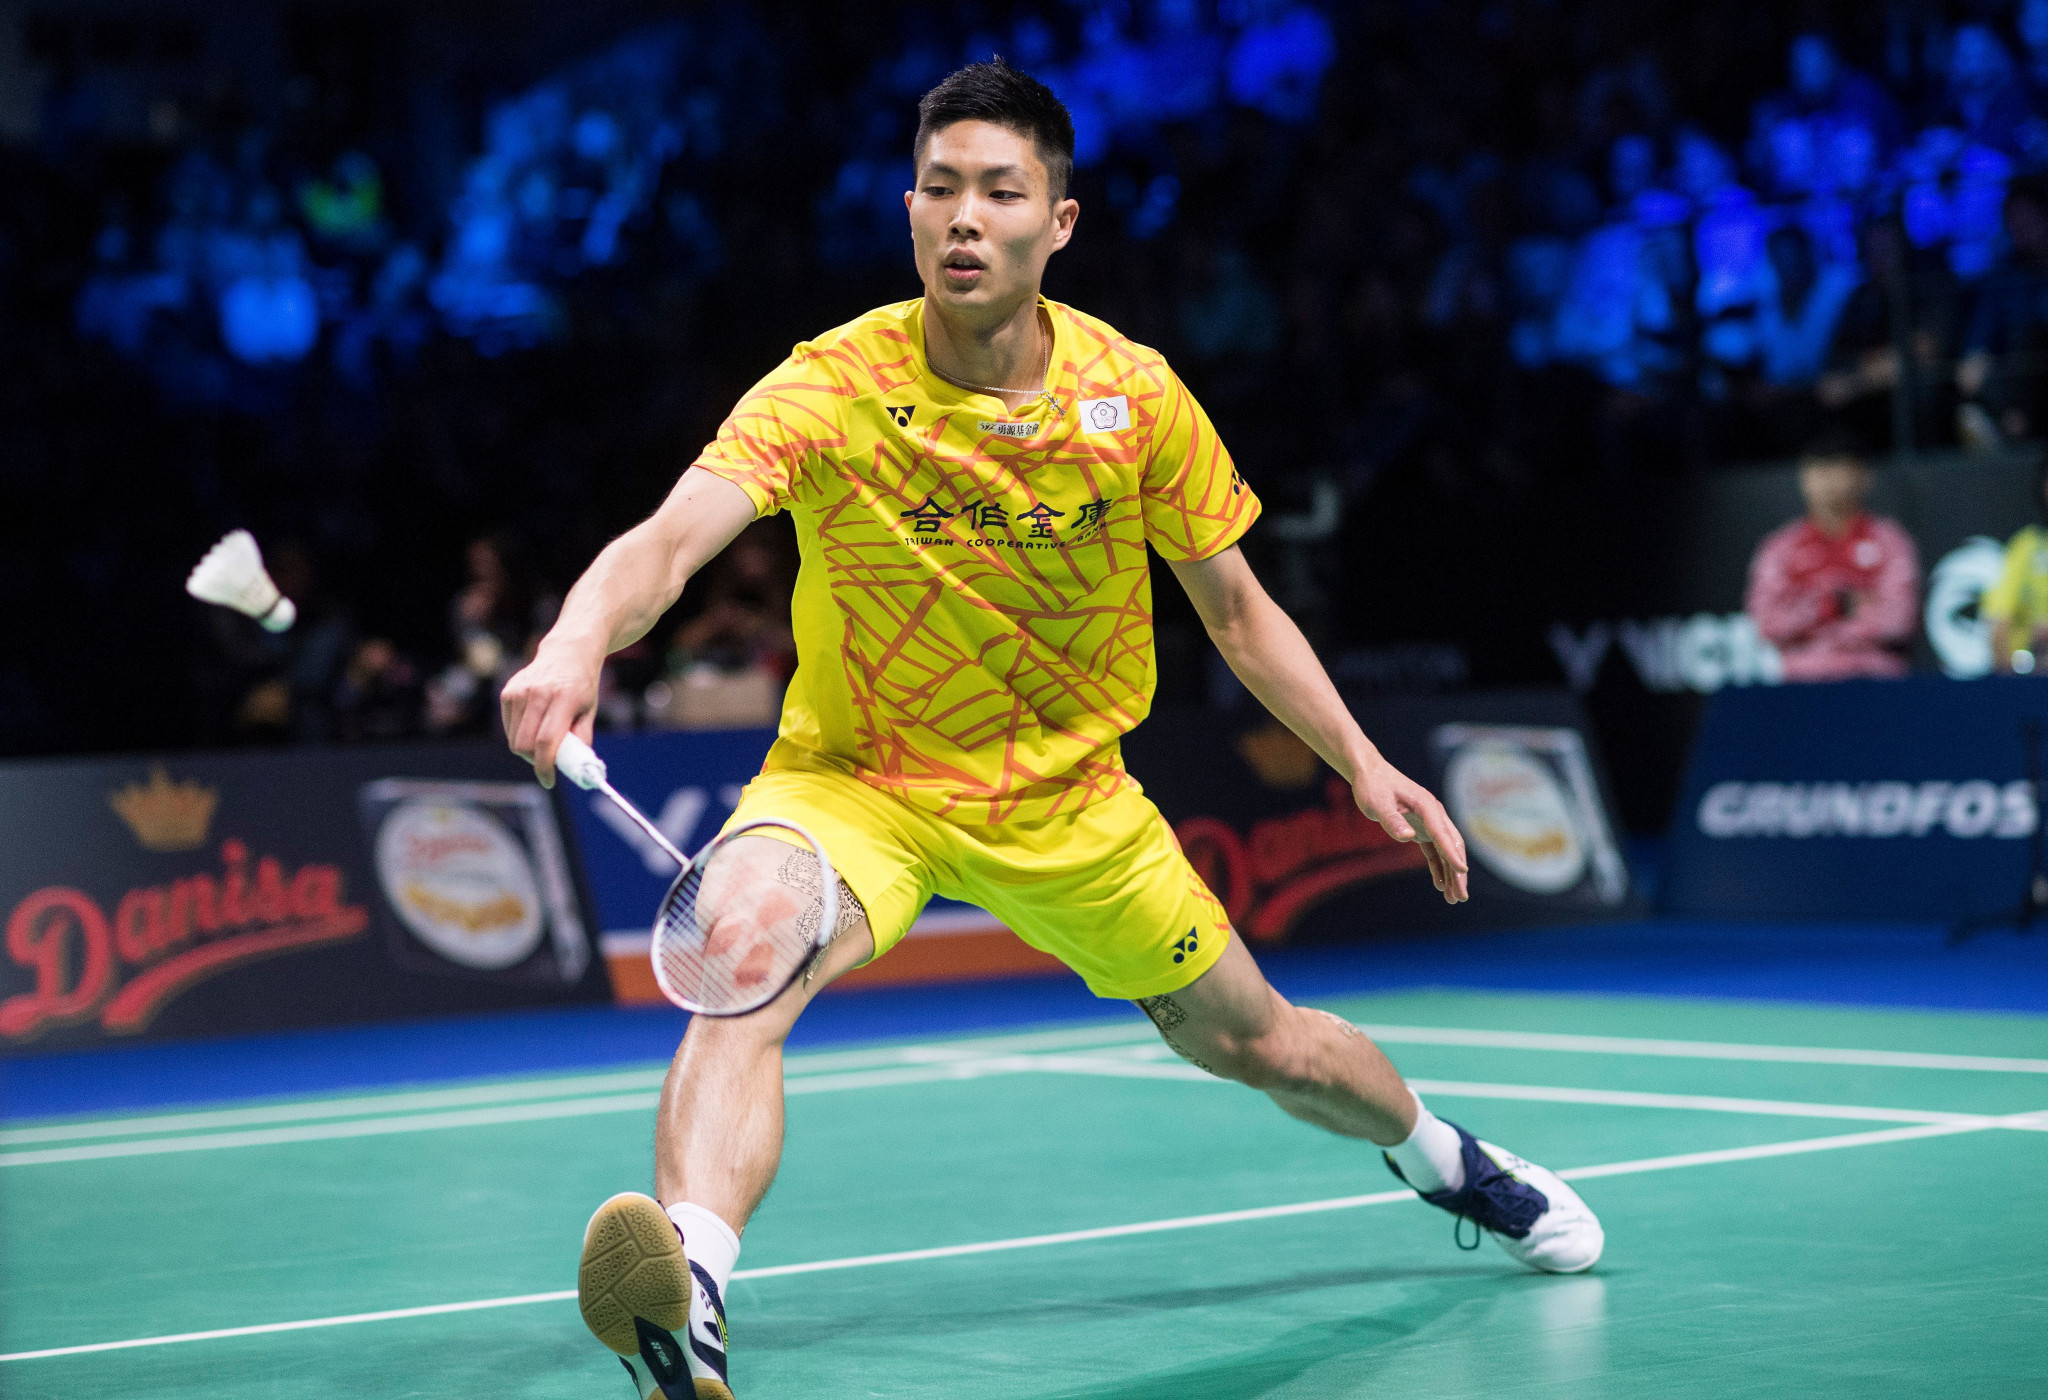 Finalists decided at BWF Denmark Open